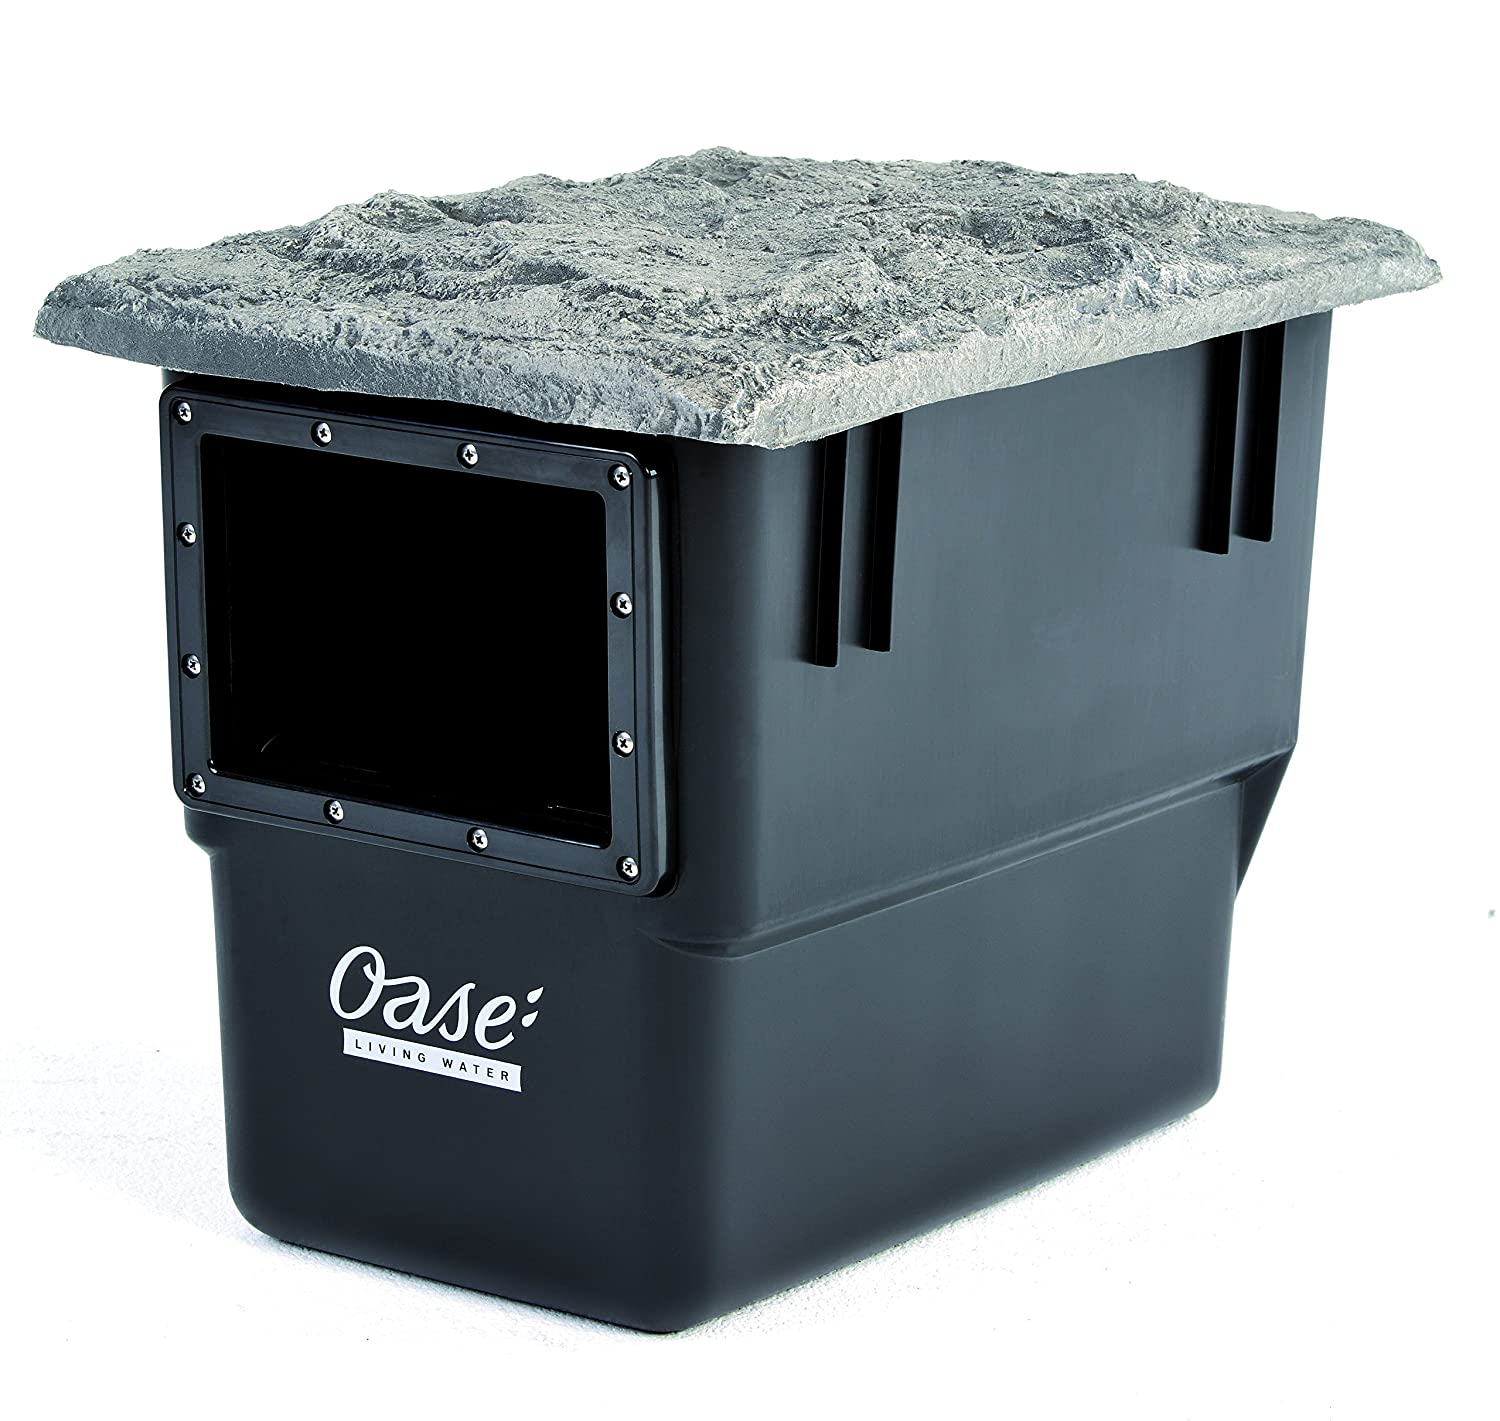 Oase Built-in Surface Skimmer Biosys Skimmer